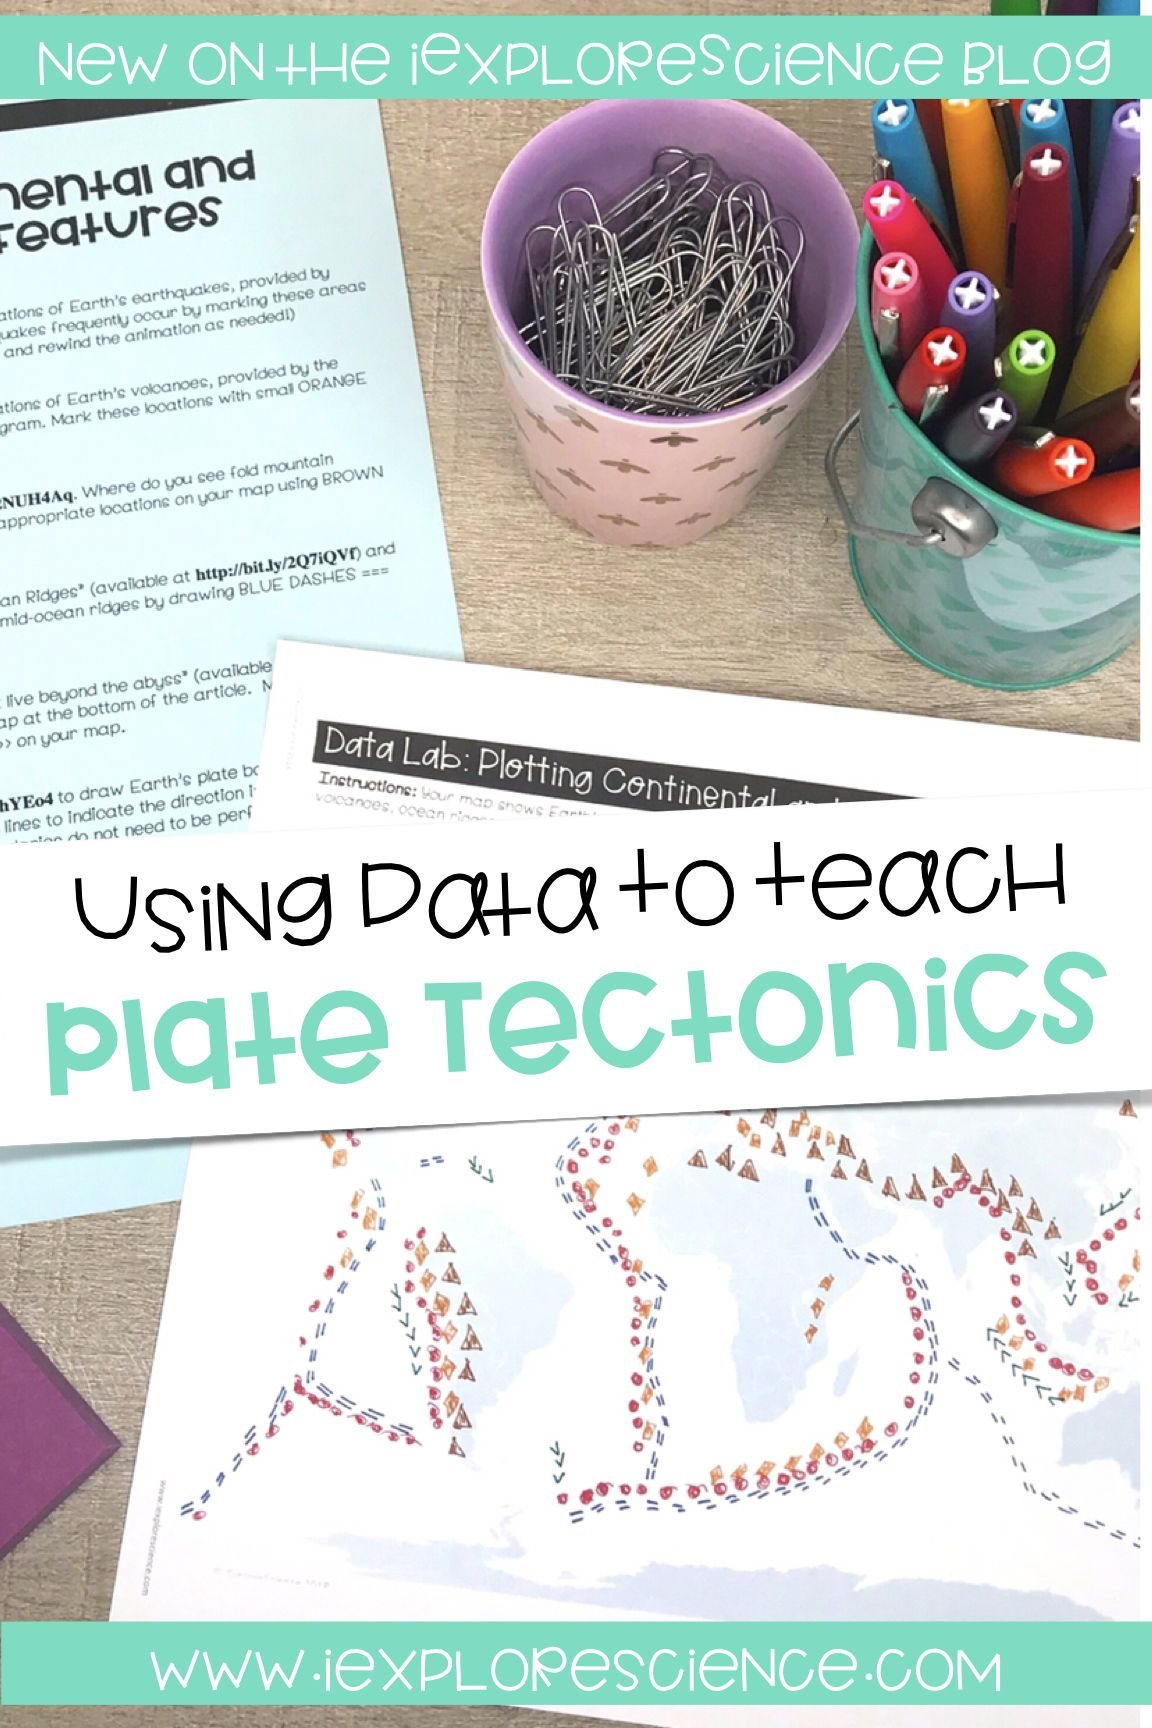 Learn A Variety Of Ways To Model The Exploration Of Plate Tectonics As Well As Activi Plate Tectonics Tectonic Plates Activities Plate Tectonics Middle School [ 1728 x 1152 Pixel ]